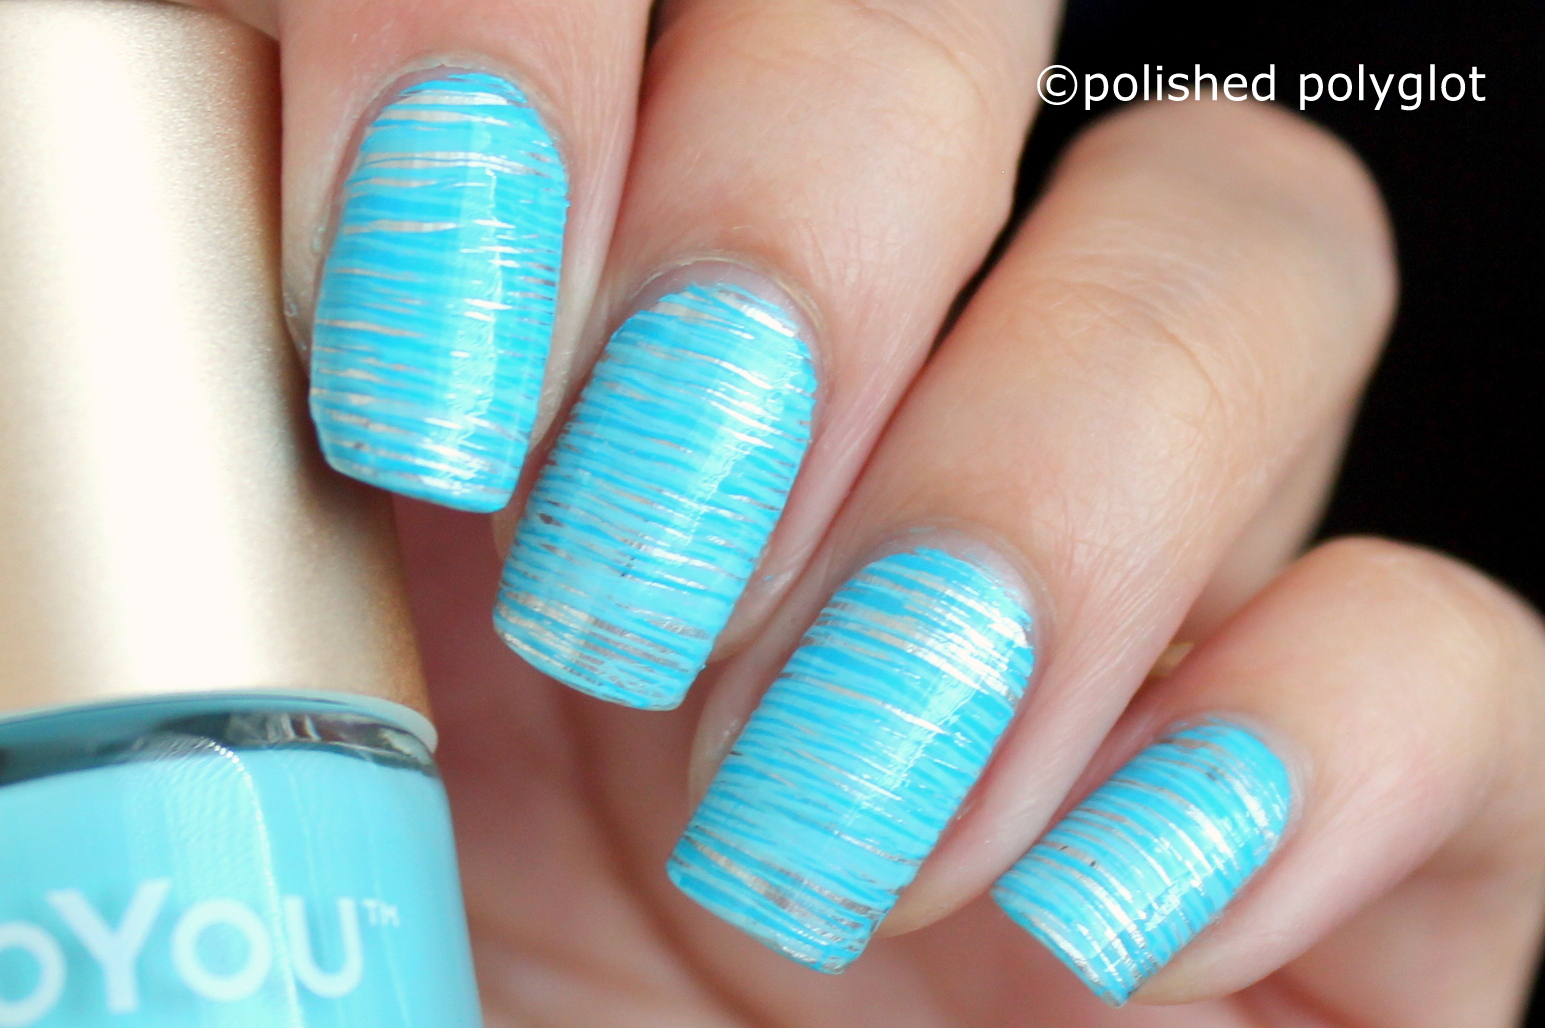 Nail art aqua blue nail design for summer 26gnai polished i hope you like it i find this design super appropriate for a beach vacation or for swimming pool season let me know your thoughts in the comment prinsesfo Choice Image